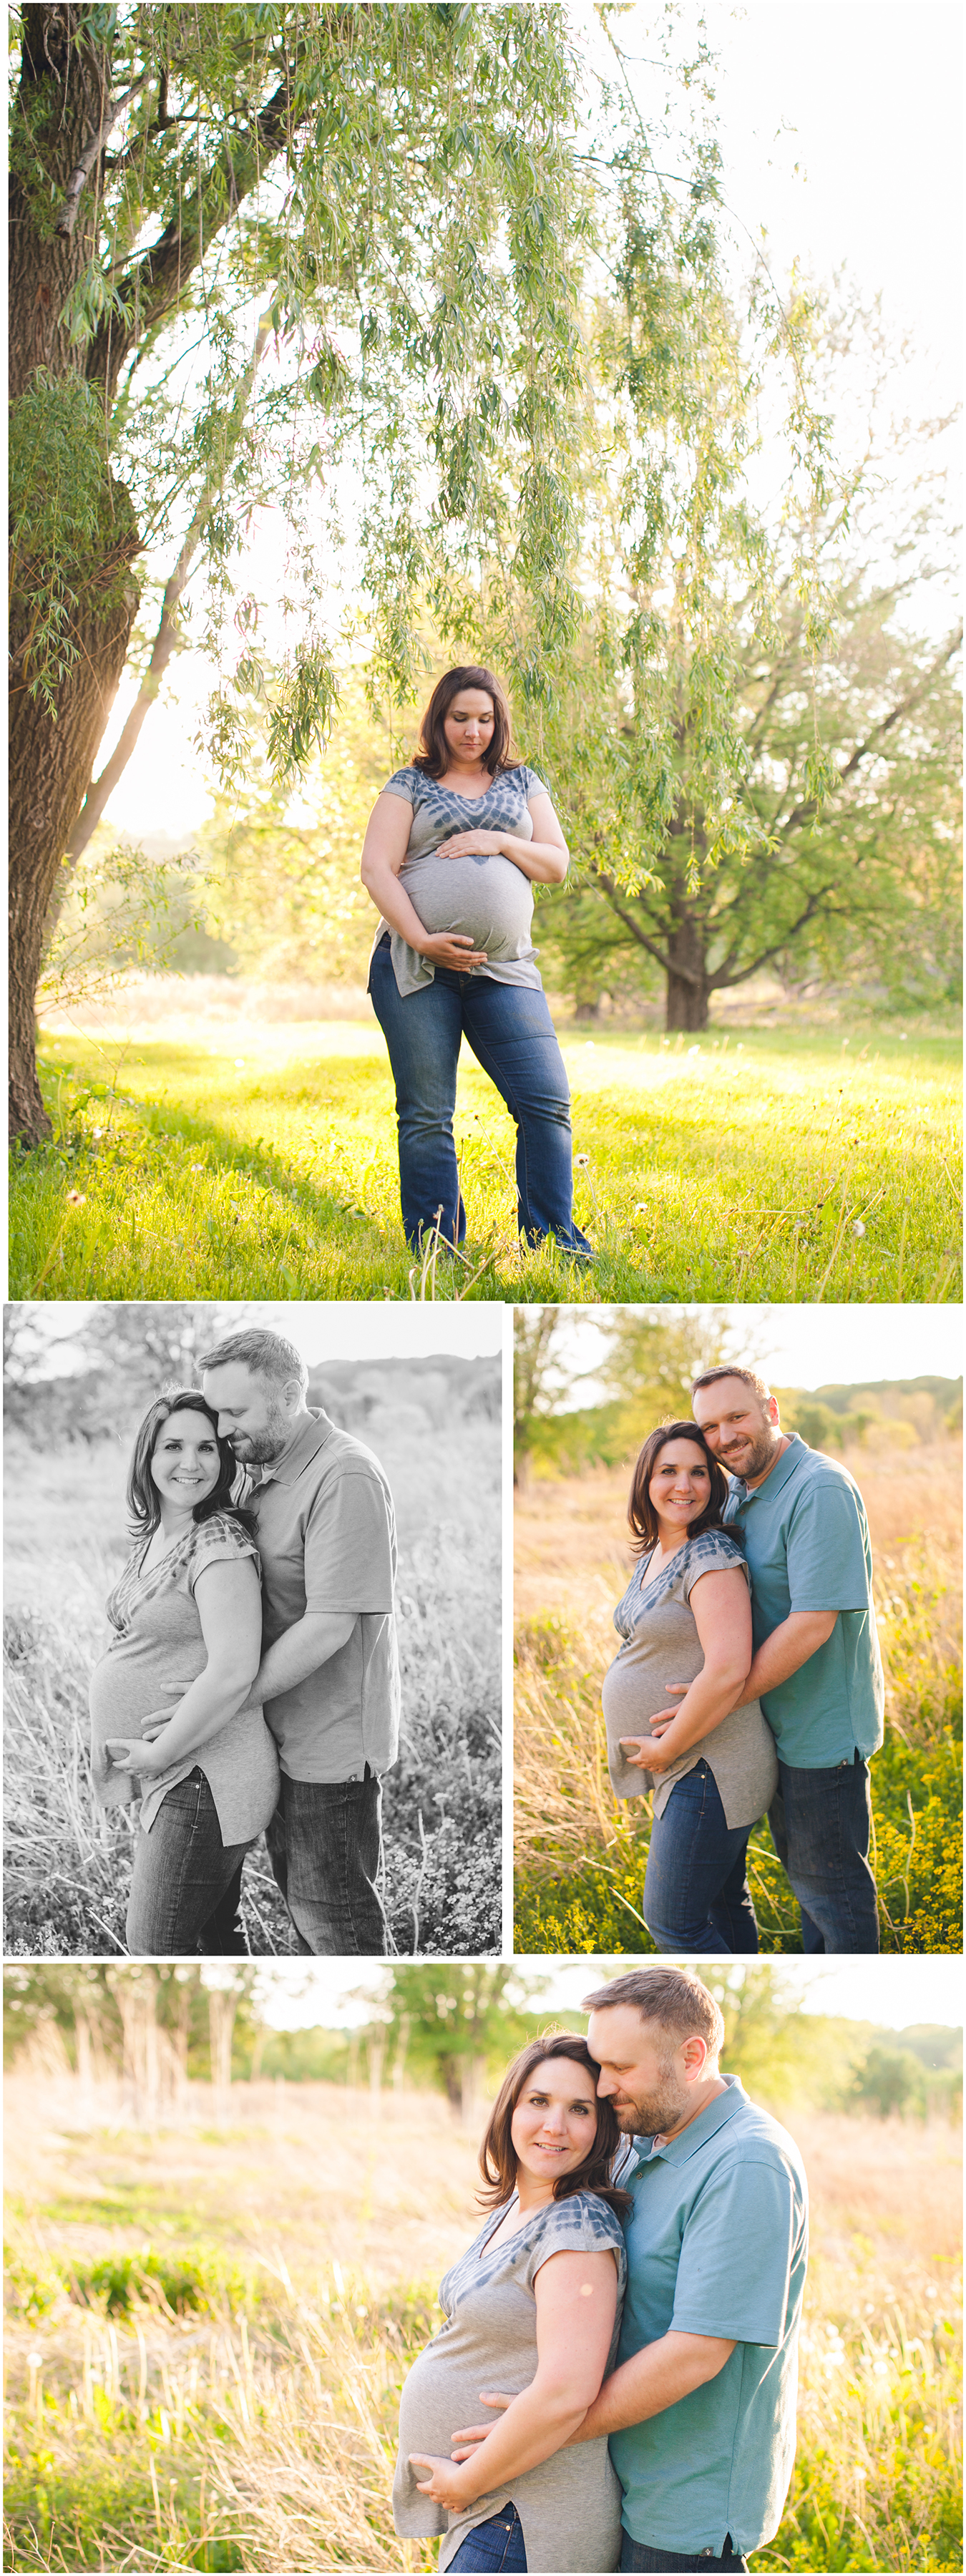 Maternity Session Lafayette Indiana Pearl Photo & Design 7